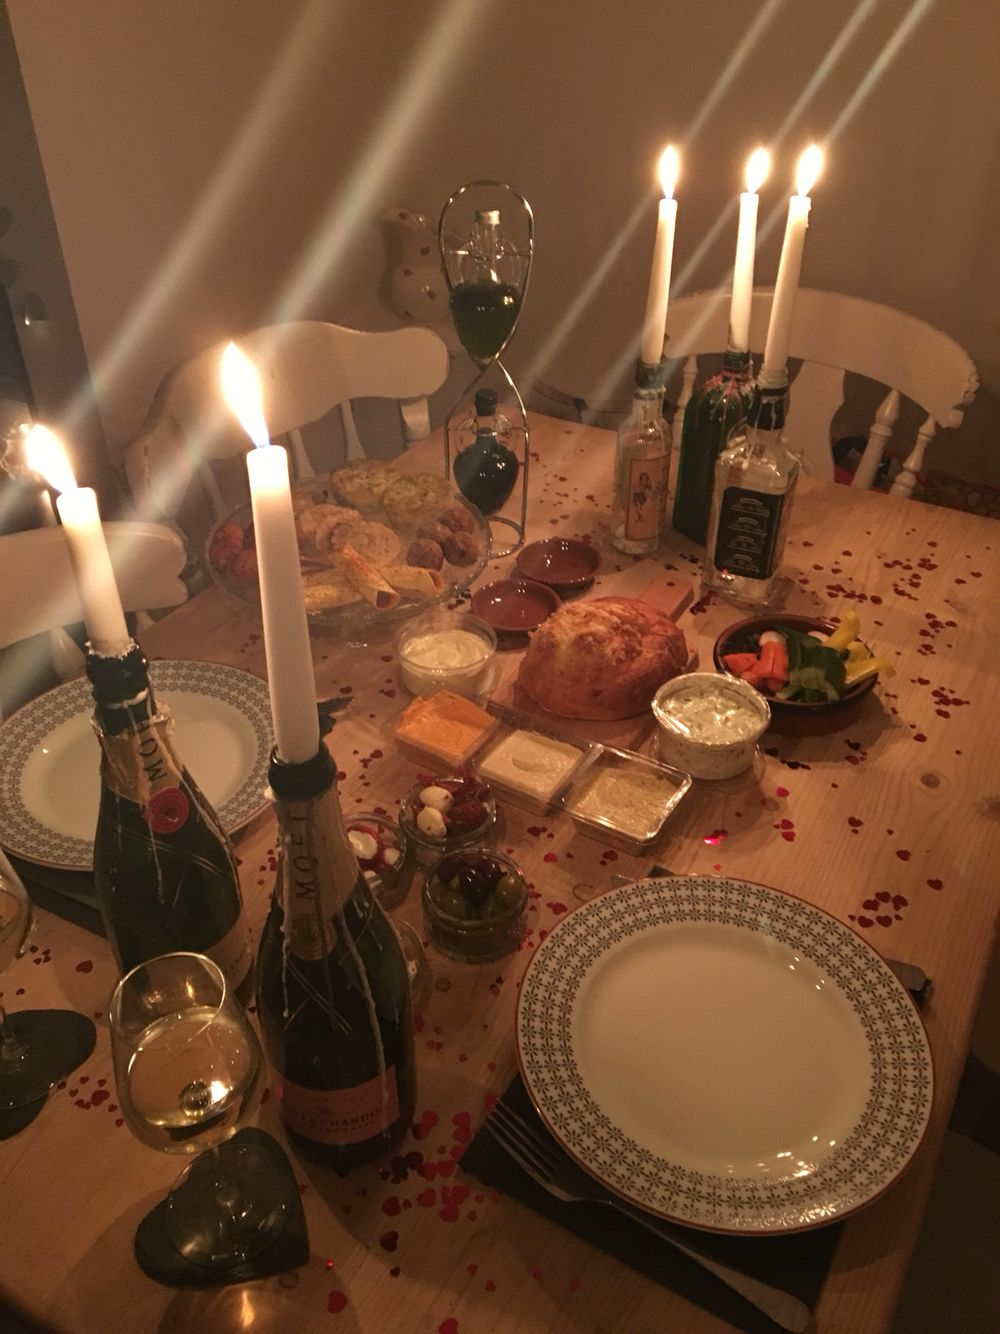 Cosy candlelight dinner for two romantic dinner